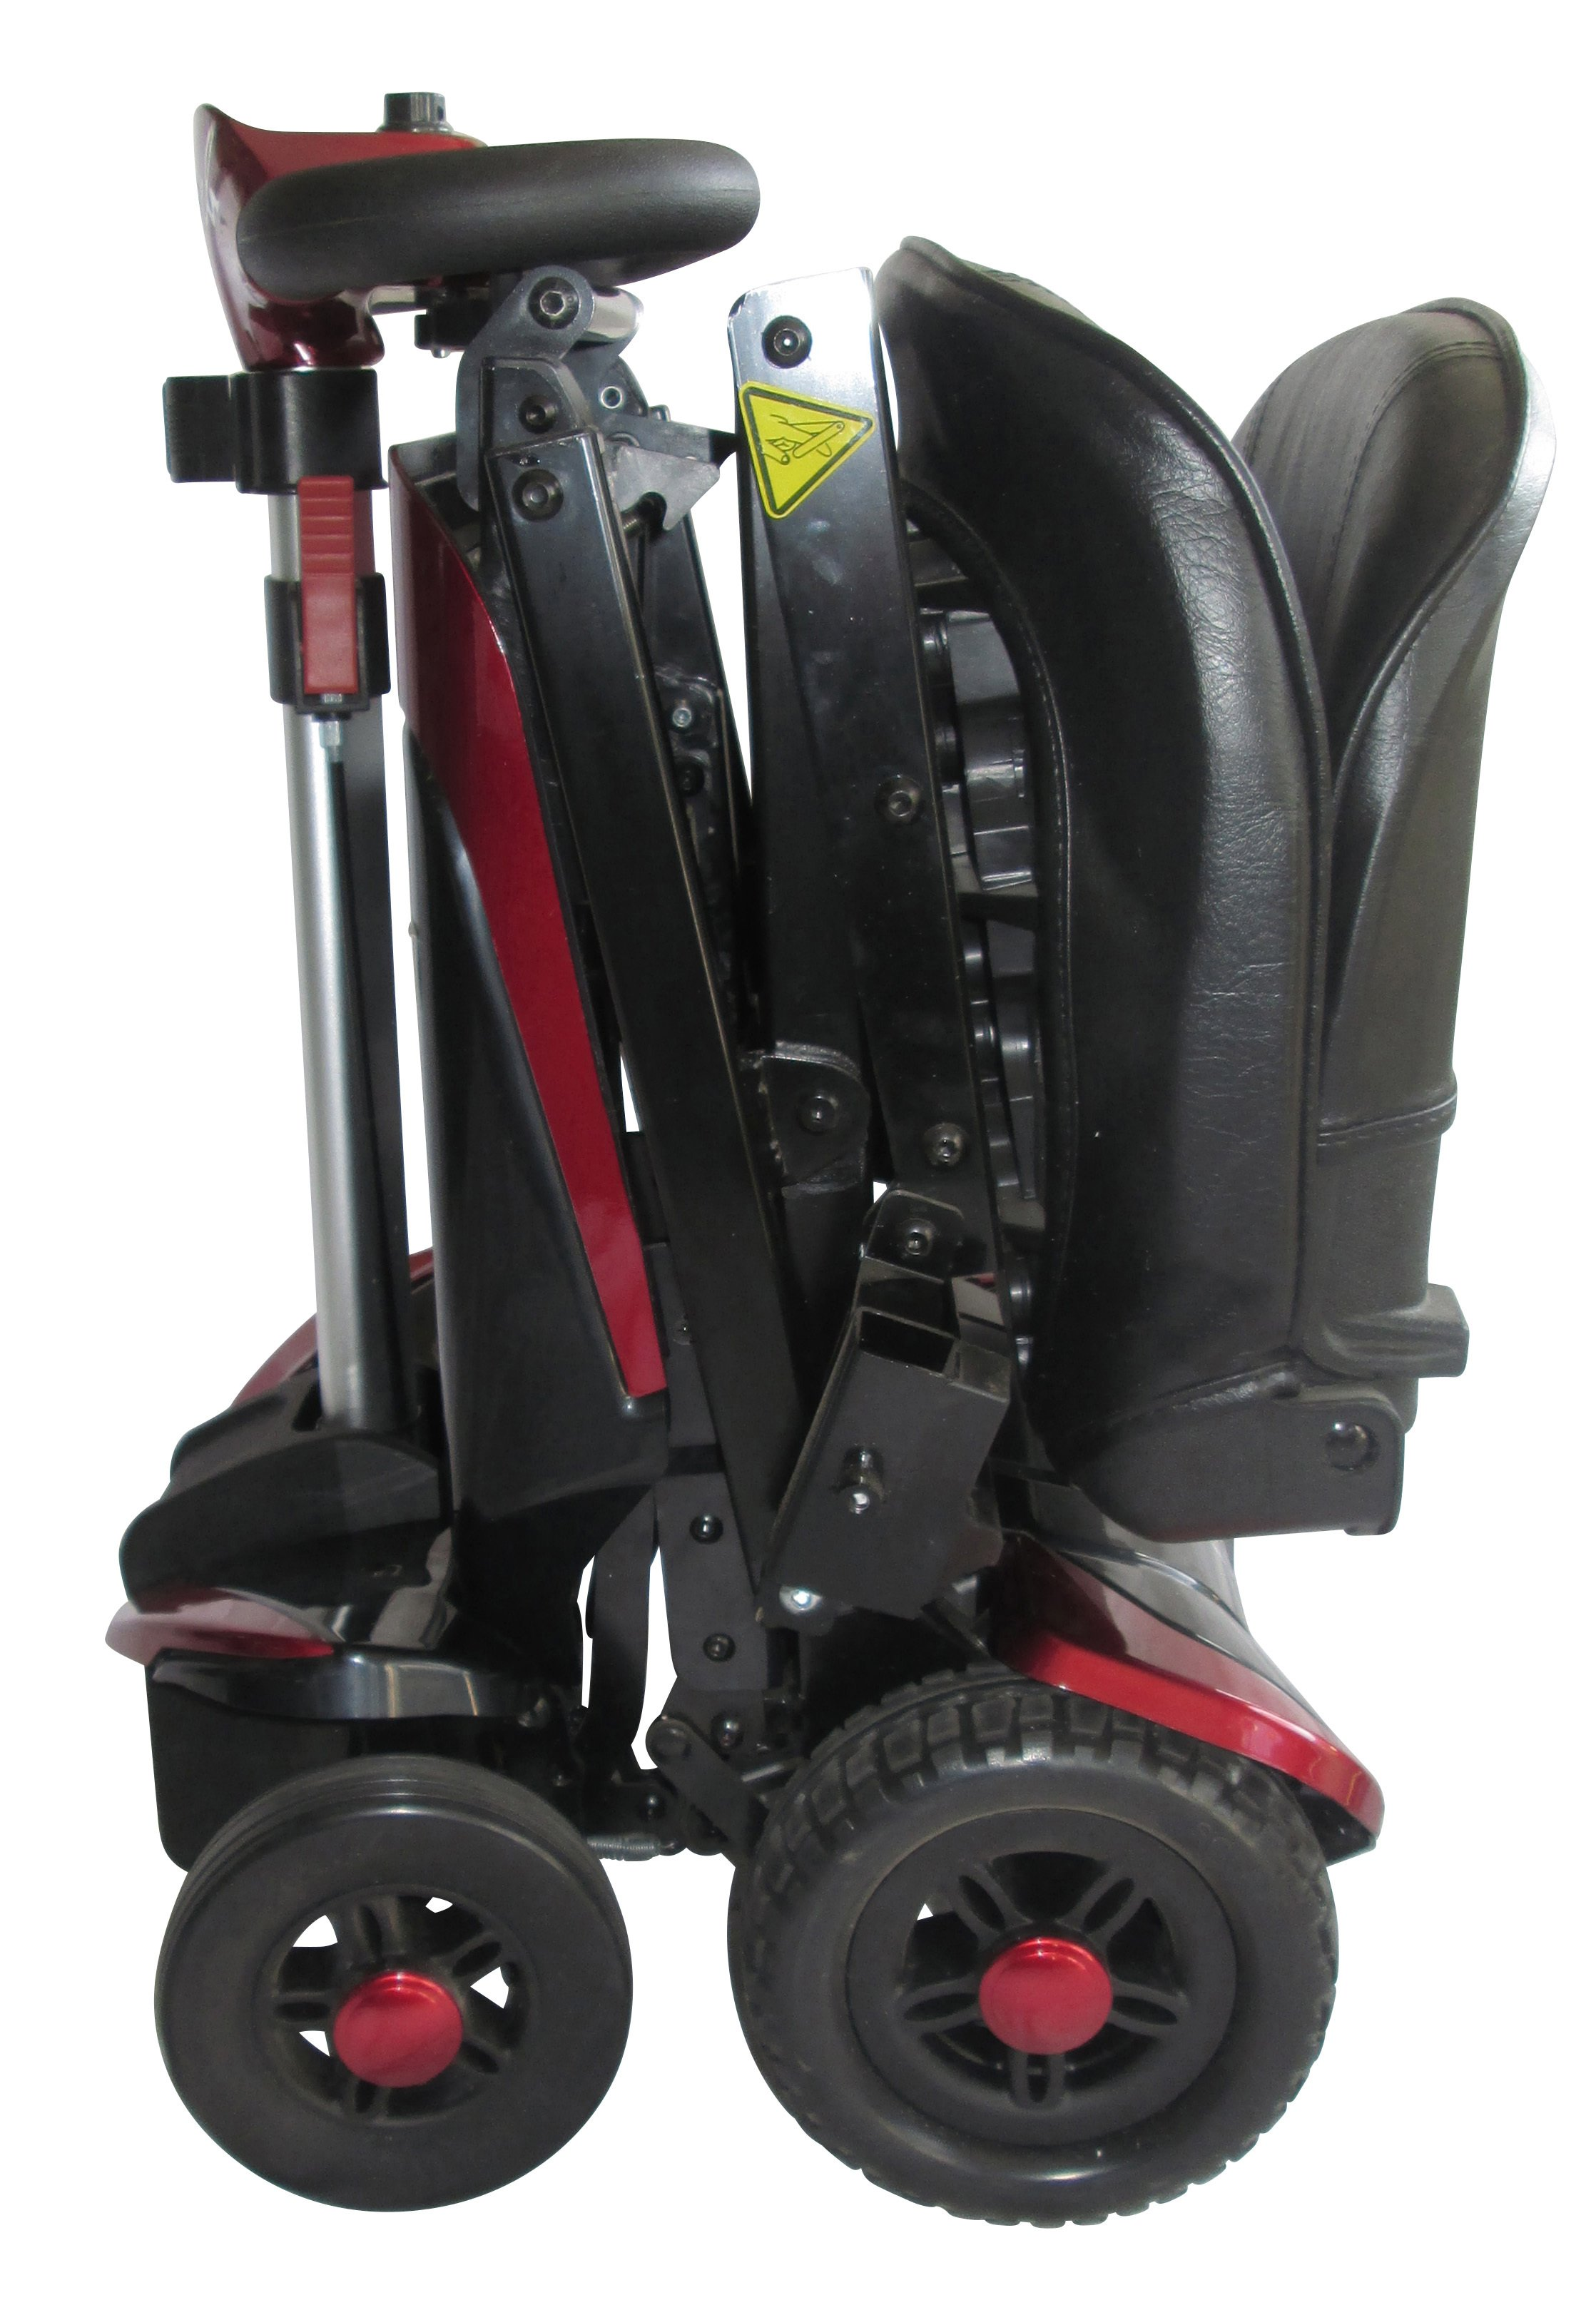 collapsed mobility scooter with wheels